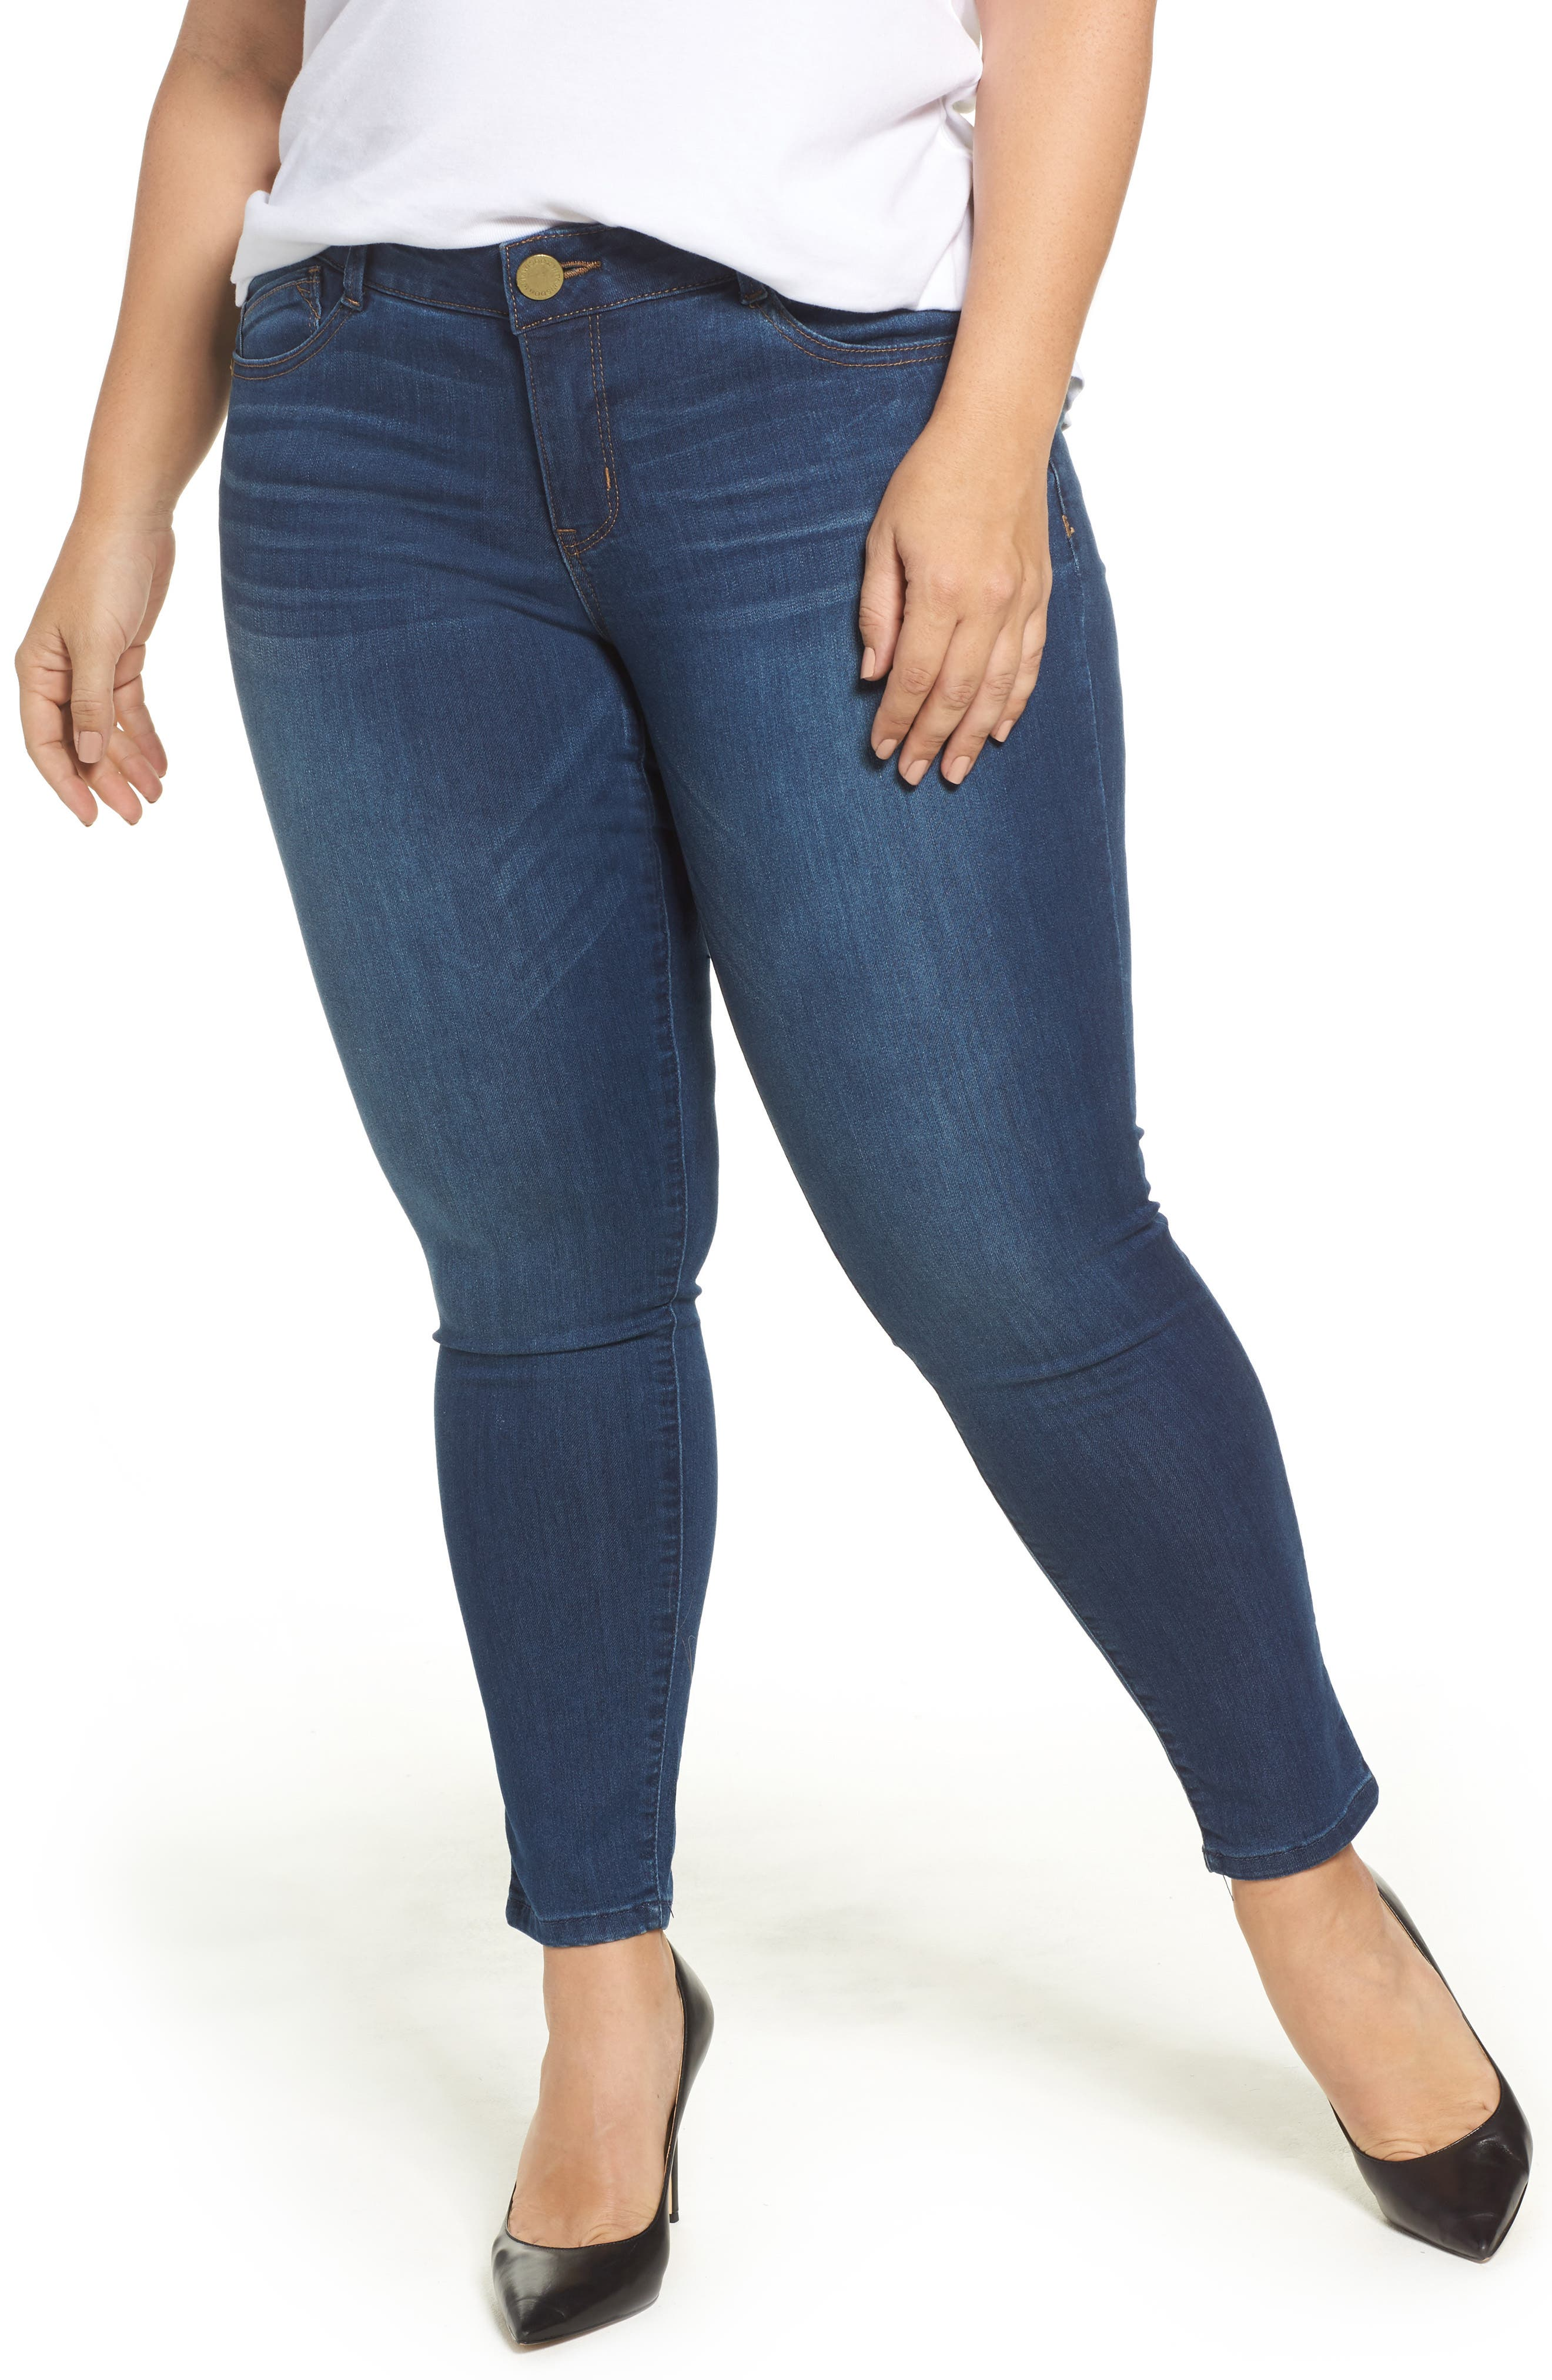 Ab-solution Skinny Jeans,                             Main thumbnail 1, color,                             420